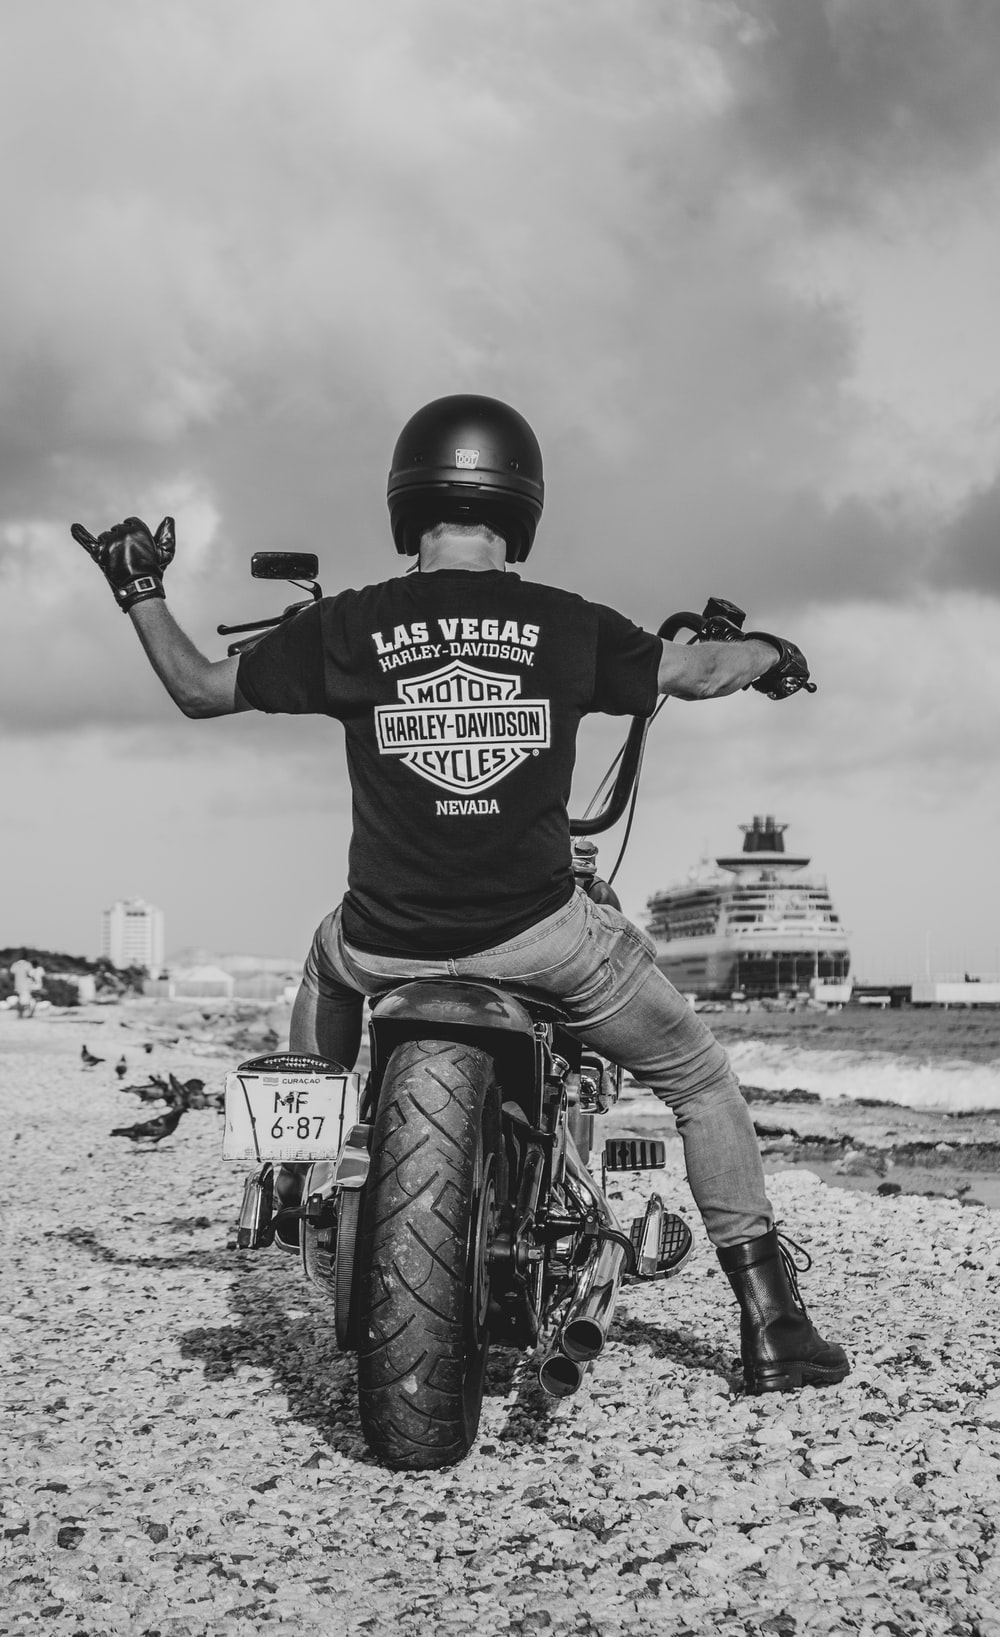 grasyscale photo of man in Harley-Davidson t-shirt riding cruiser motorcycle on shore